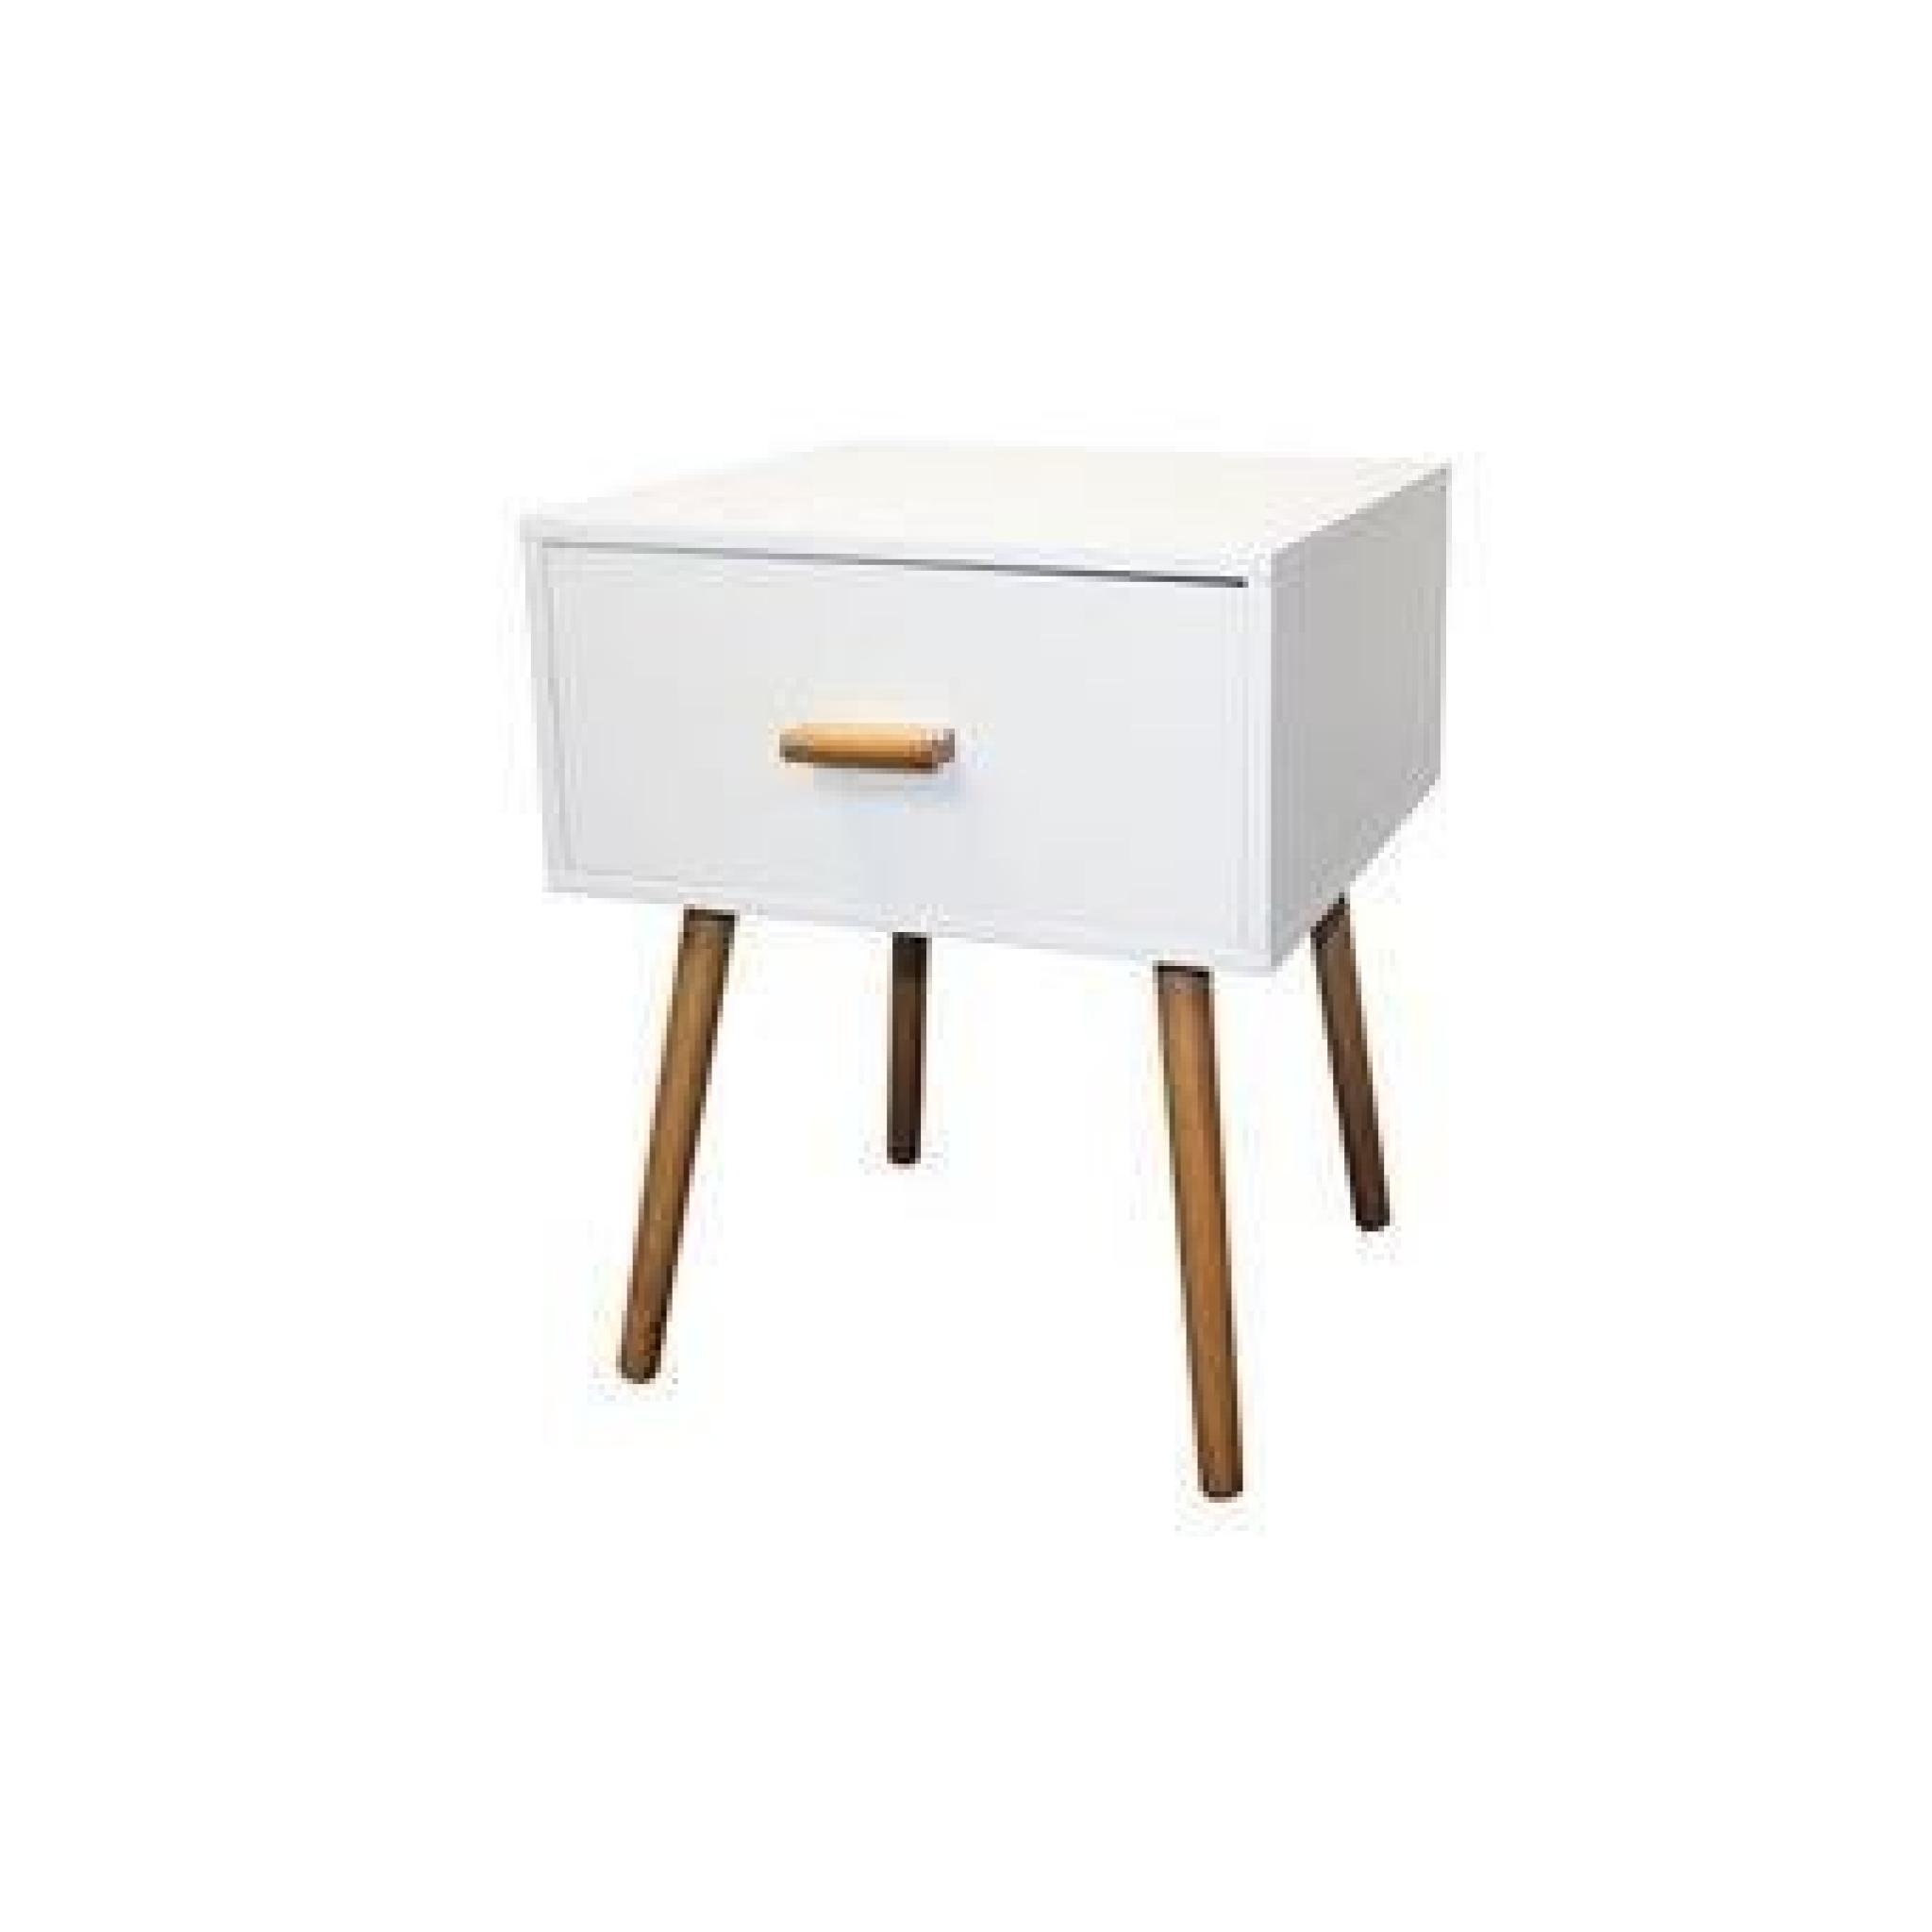 Table de chevet blanc design scandinave achat vente - But table de chevet ...